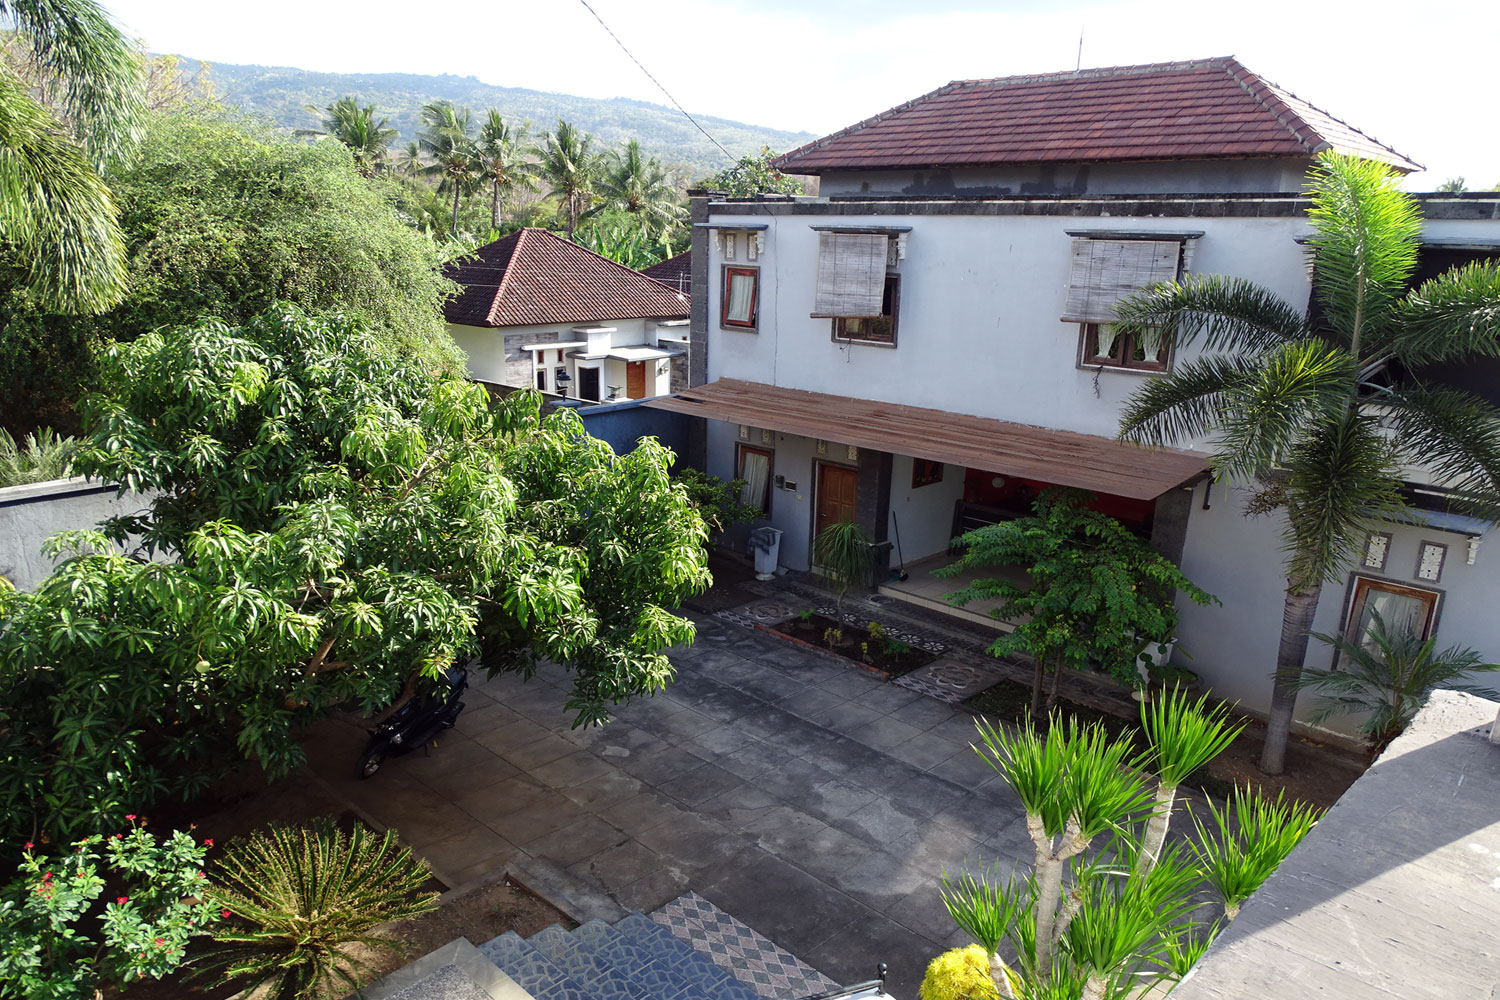 Bali Lovina house for sale – with add. guesthouse